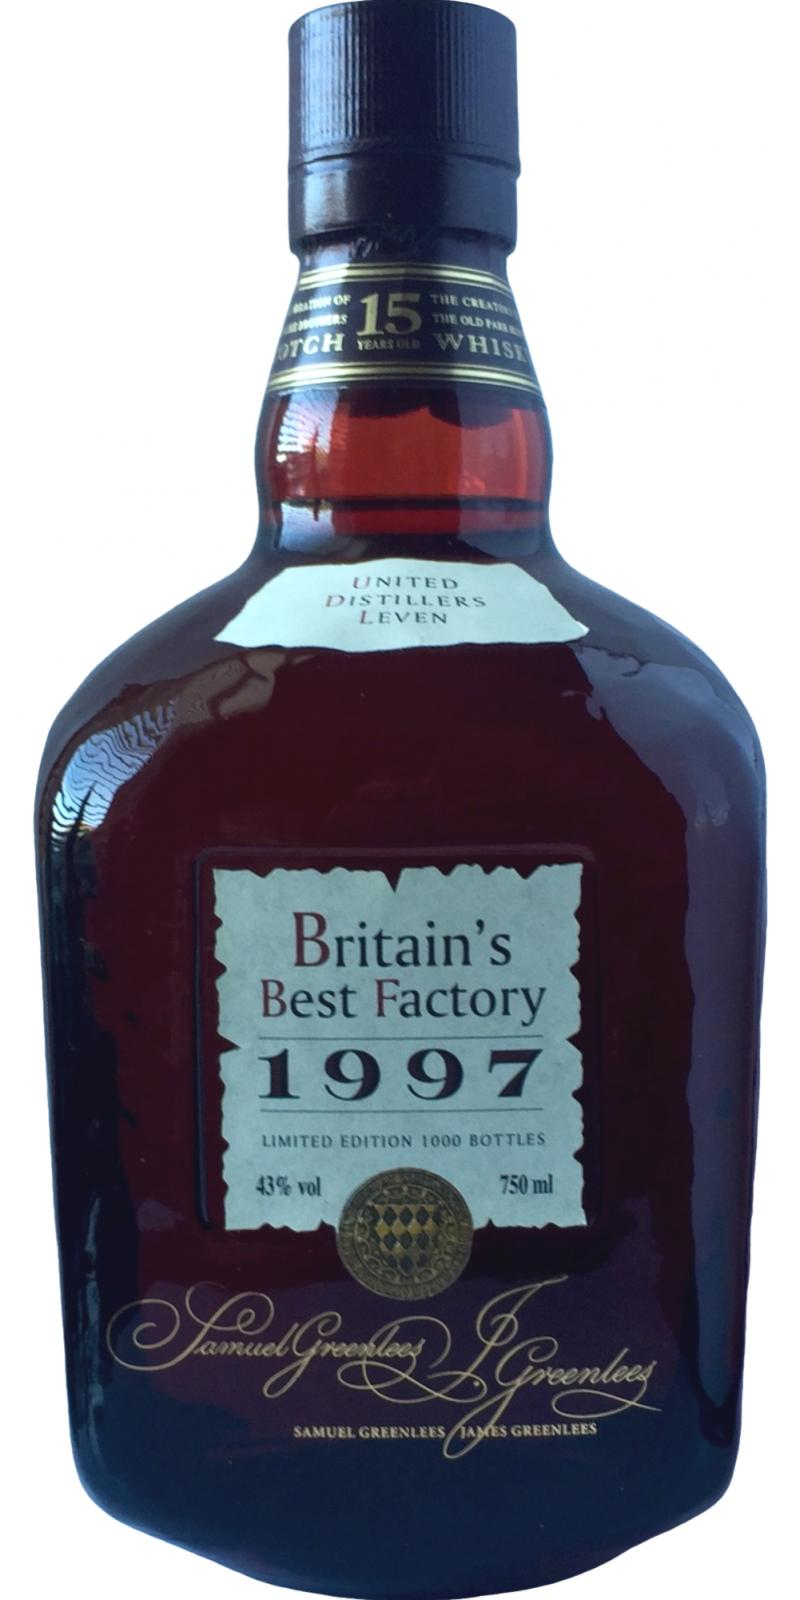 Britain's Best Factory 15-year-old